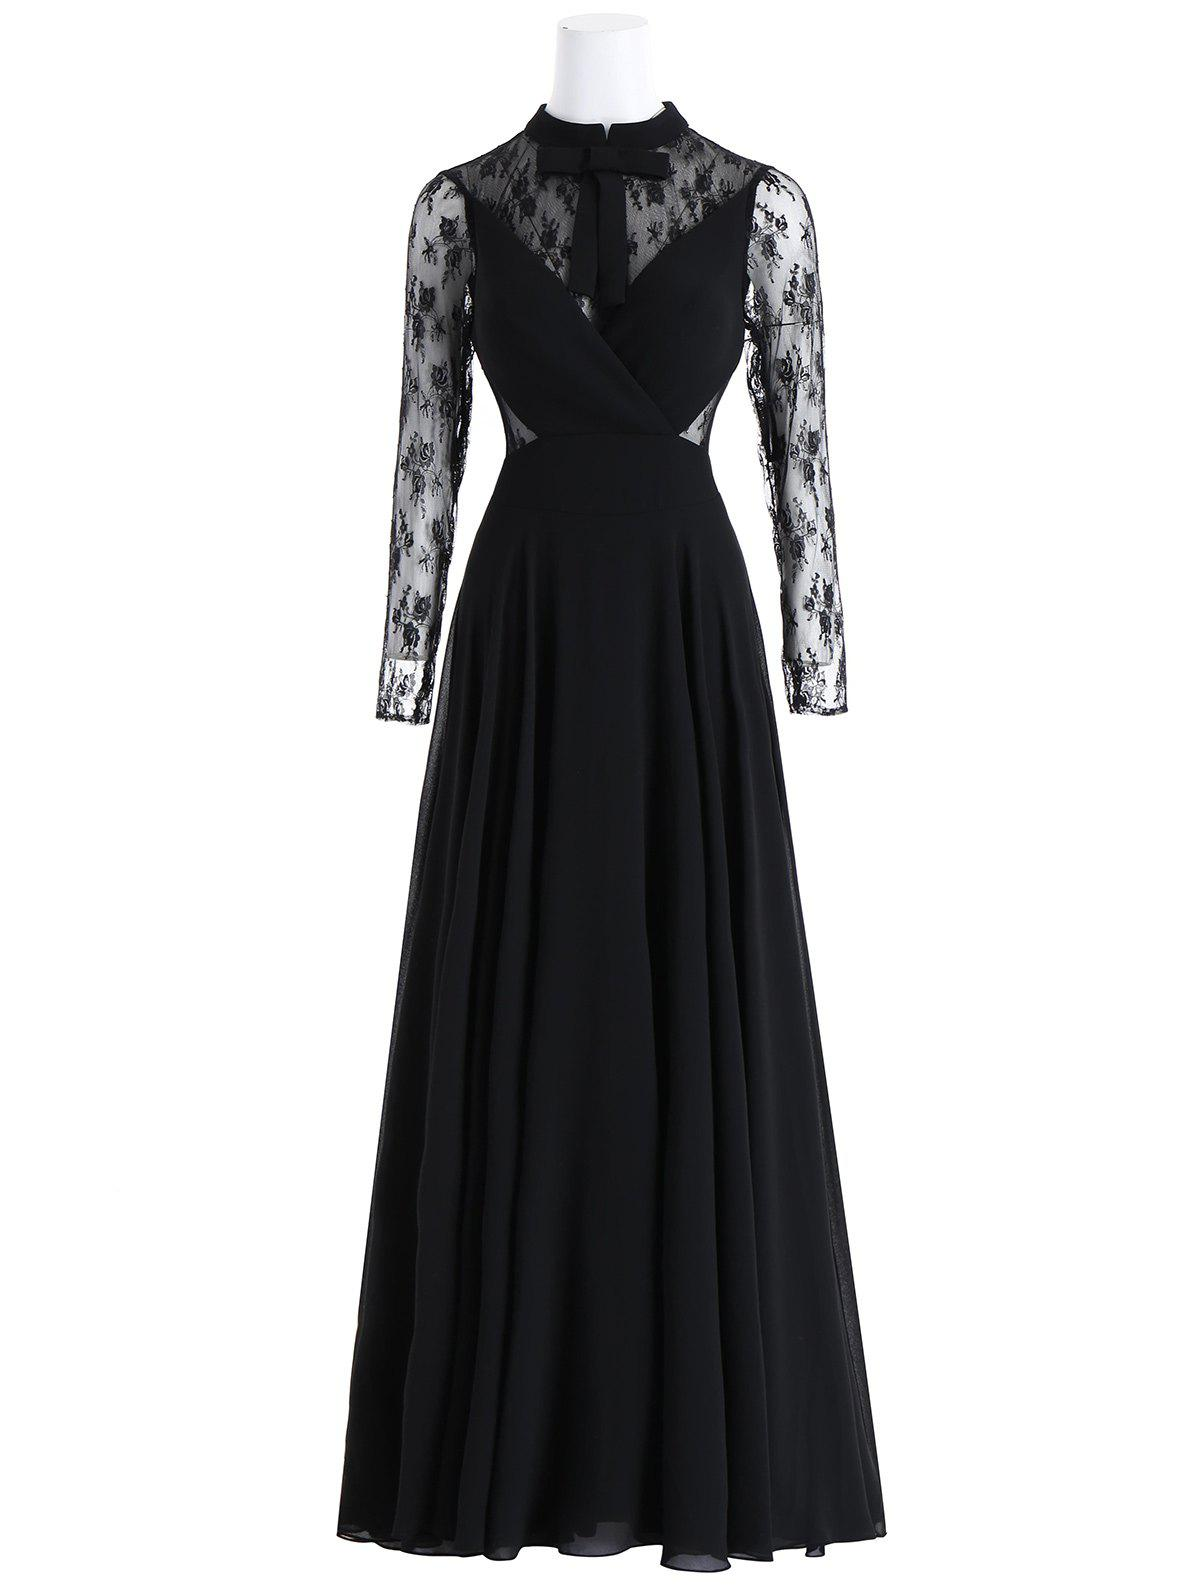 Online Bowknot Lace Insert Maxi Prom Evening Dress